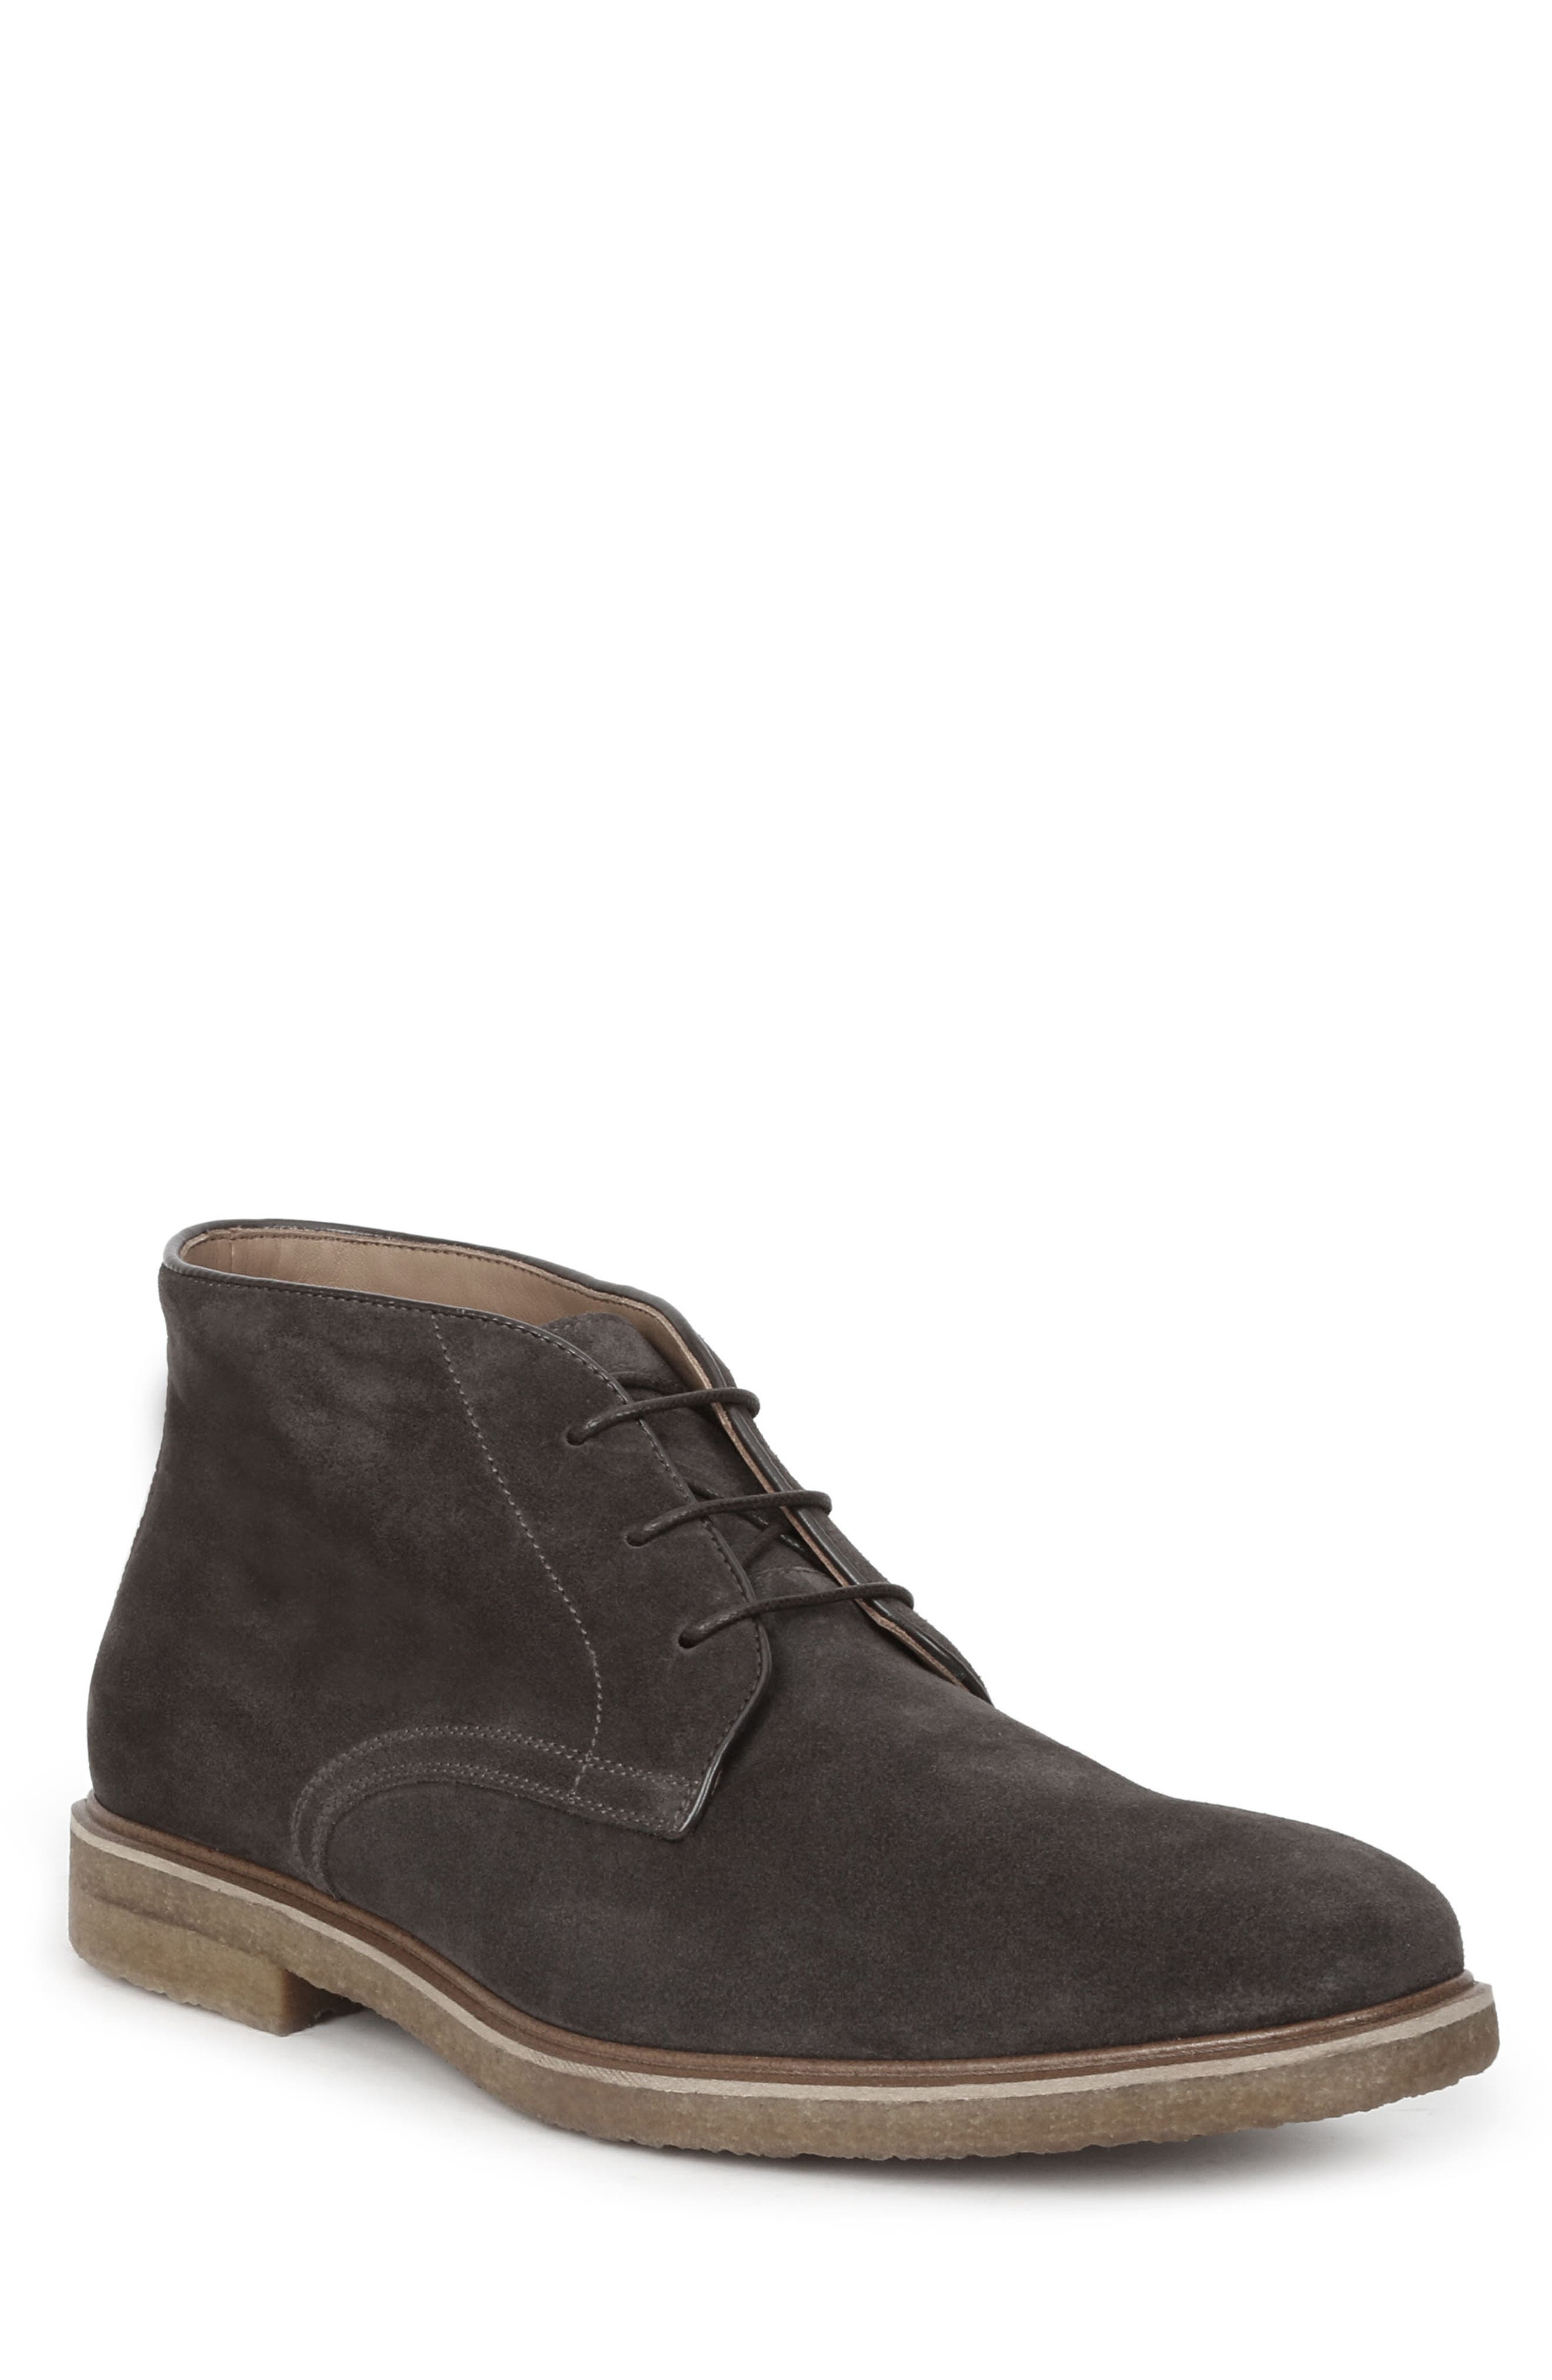 Chavez Chukka Boot,                             Main thumbnail 1, color,